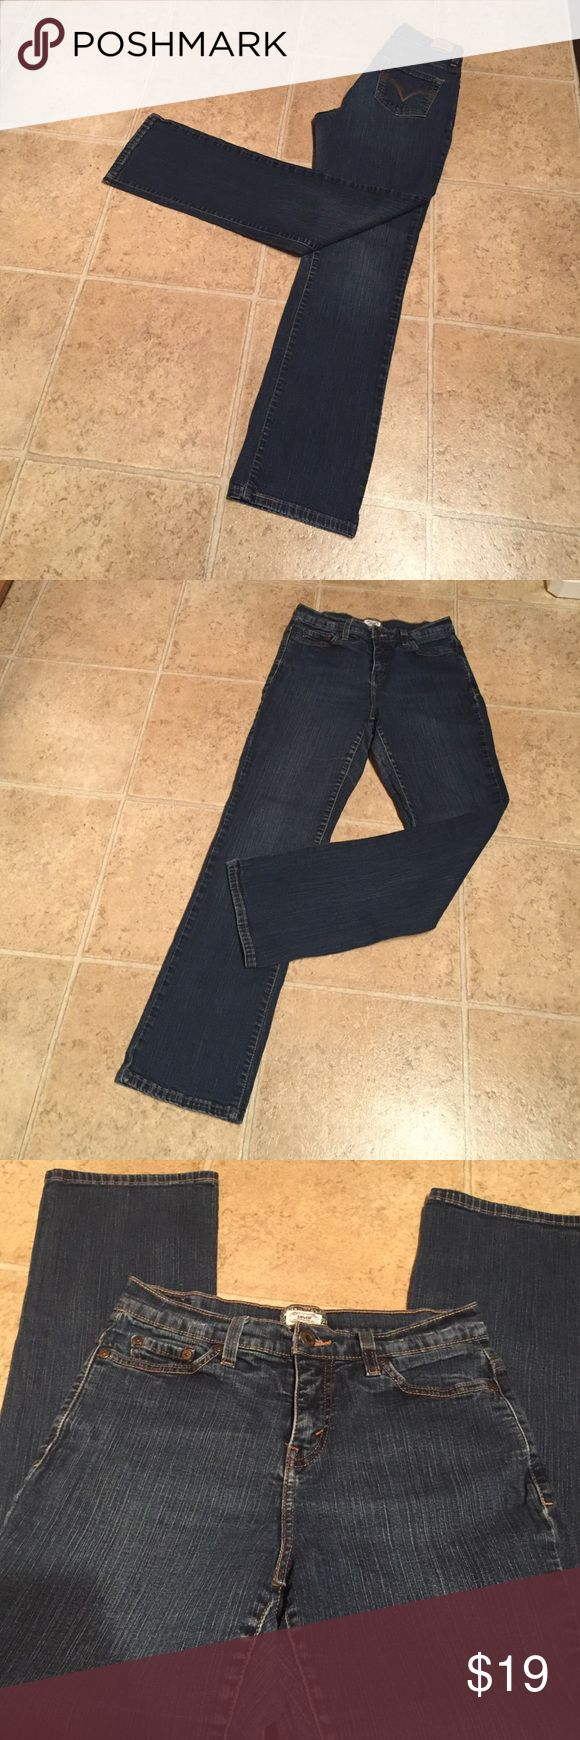 Levi's 512 straight size 6 medium 6 medium Levi's 512 straight perfectly slimming jeans. 99% cotton 1% spandex. Inseam 30 1/2. In excellent condition Levi's Jeans Straight Leg